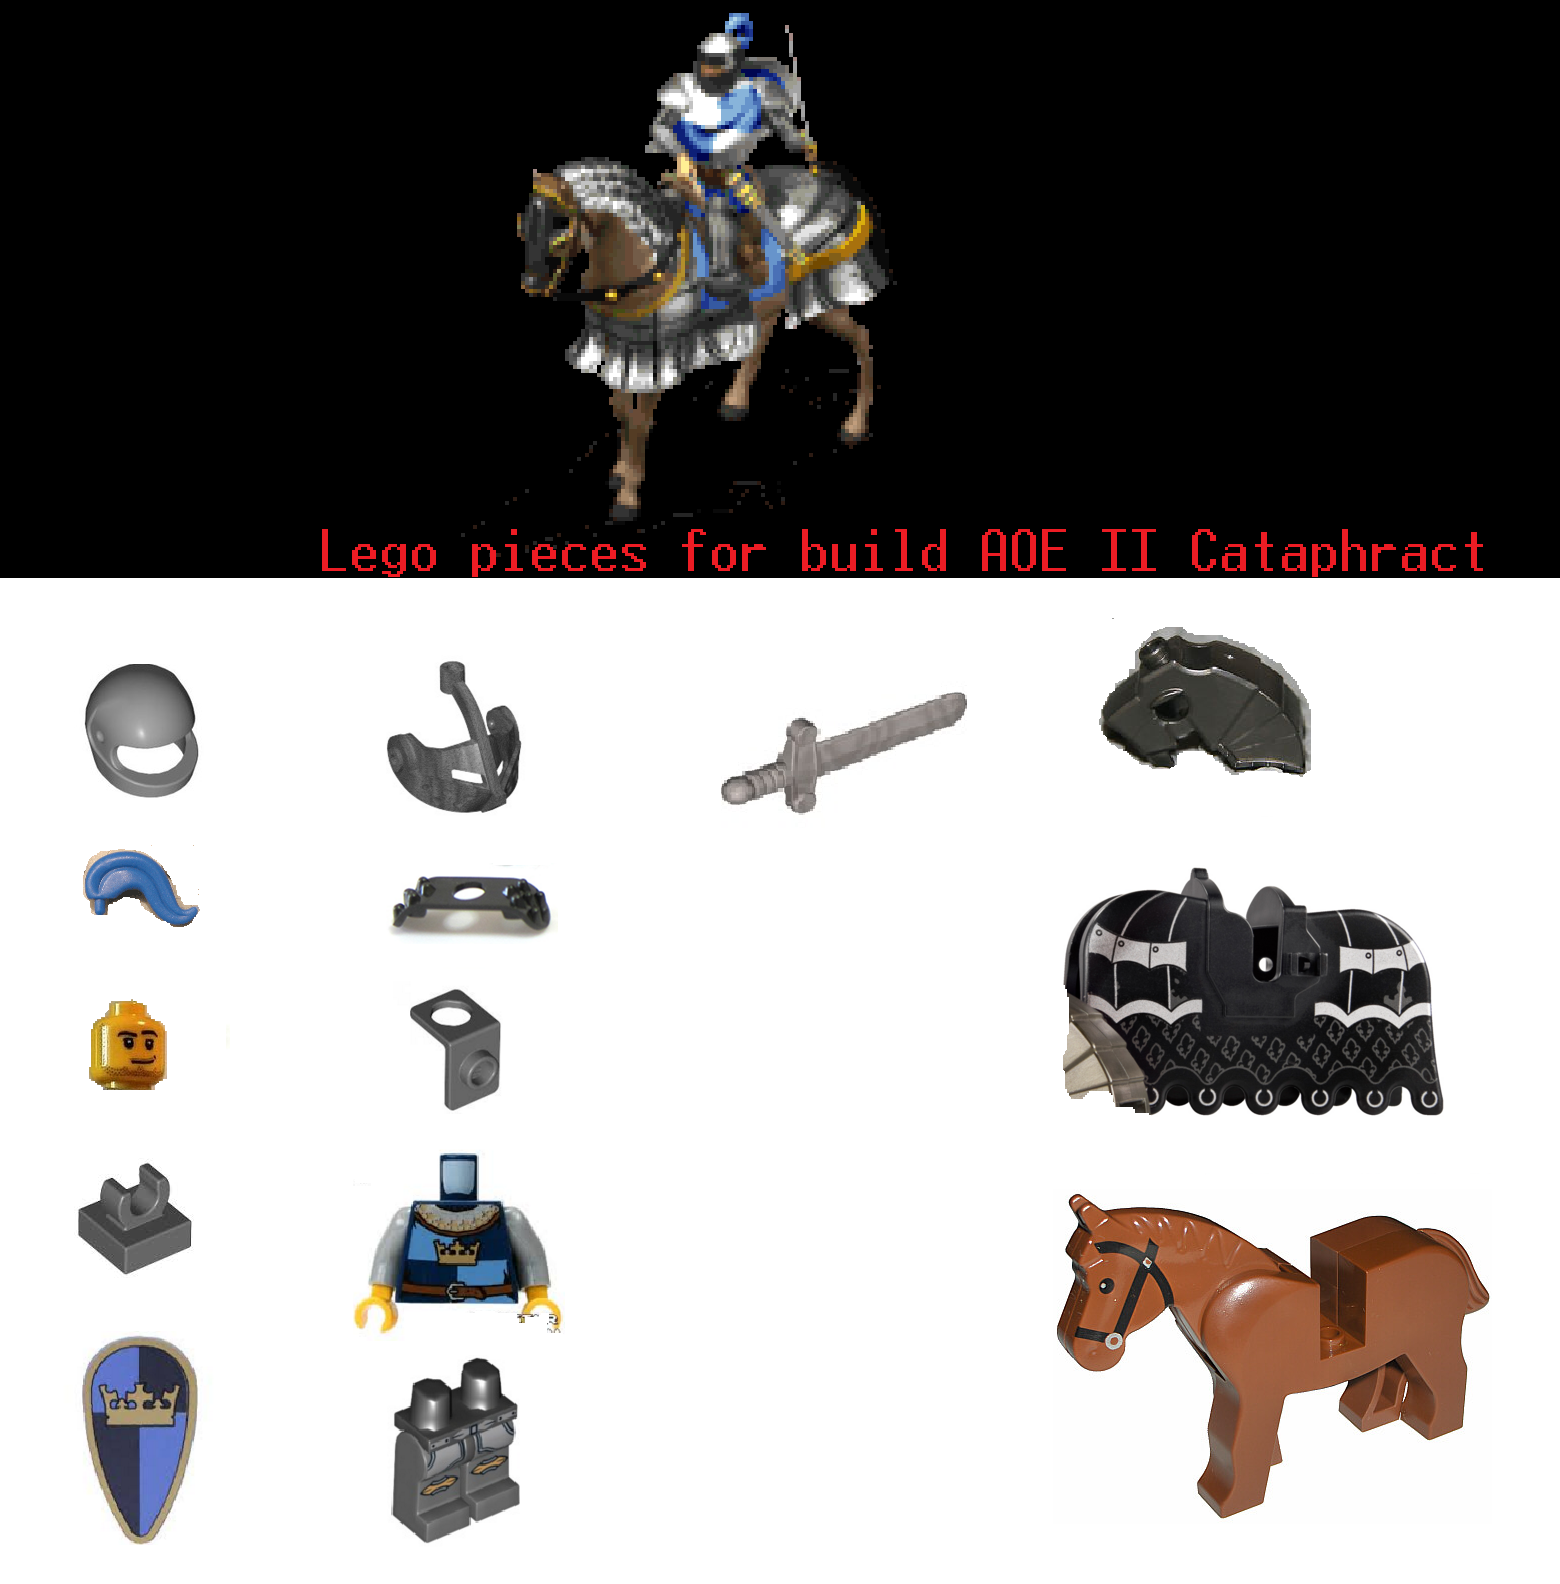 lego_-_aoe_ii_cataphract.png